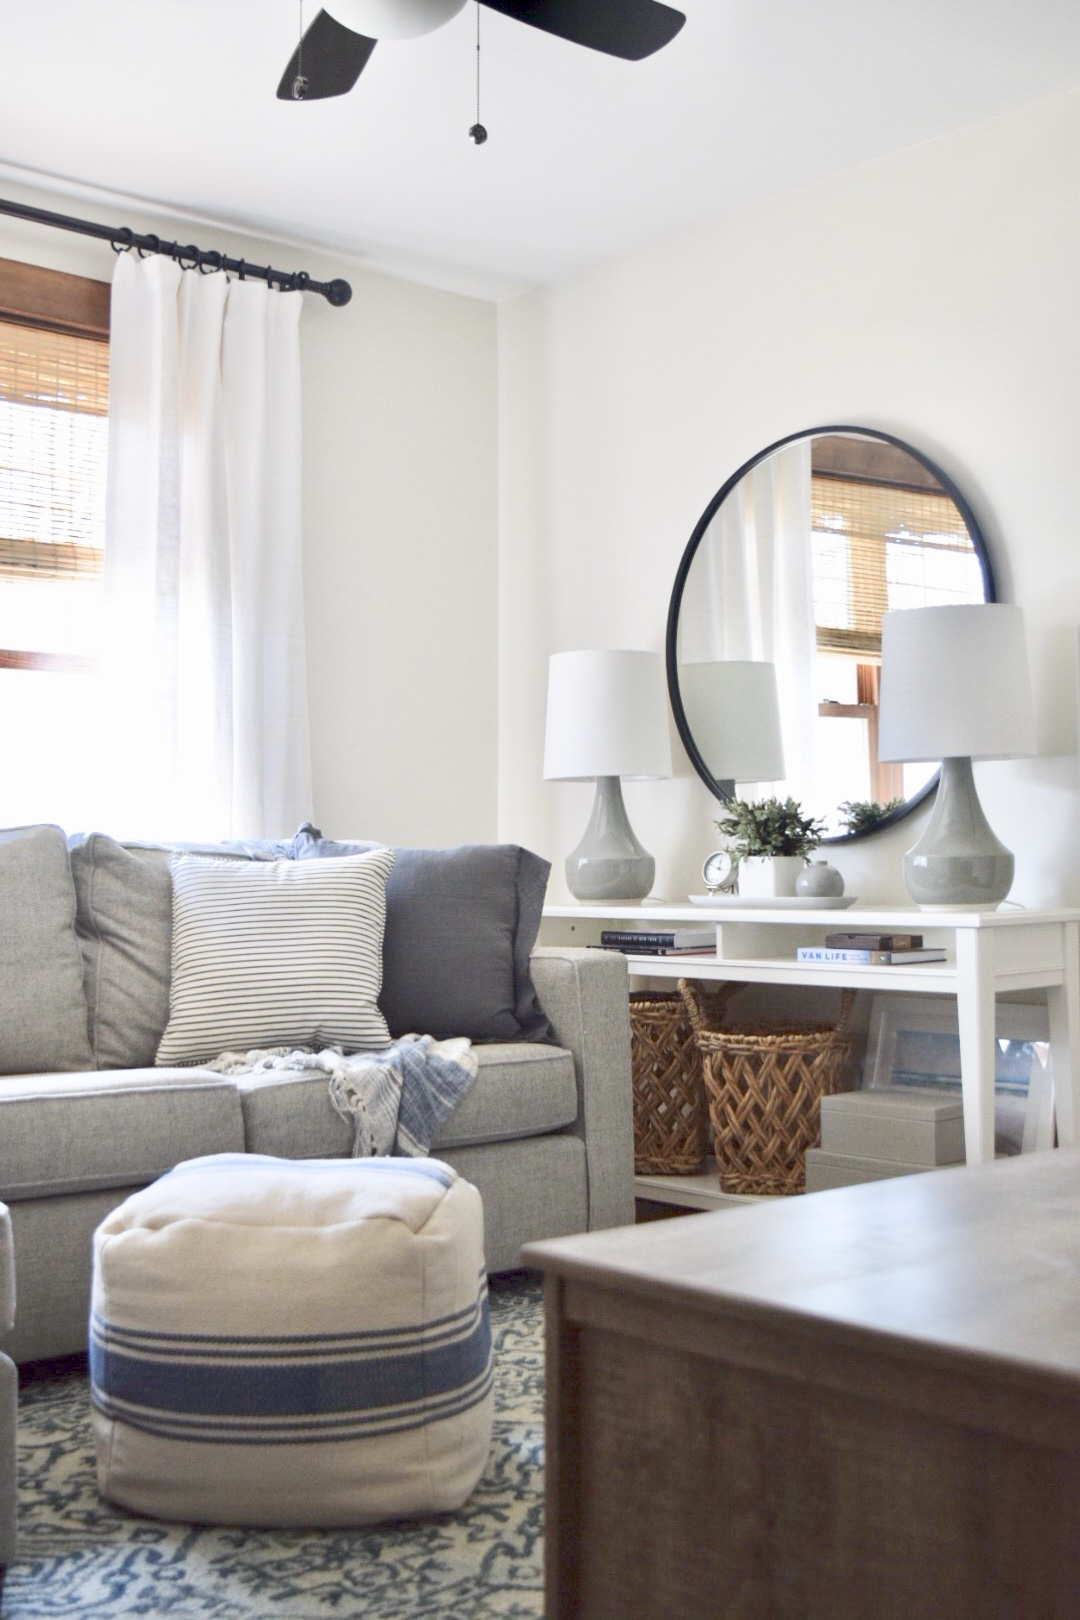 A Light Airy Coastal Media Room Interior Design Project by Christine McCall Home